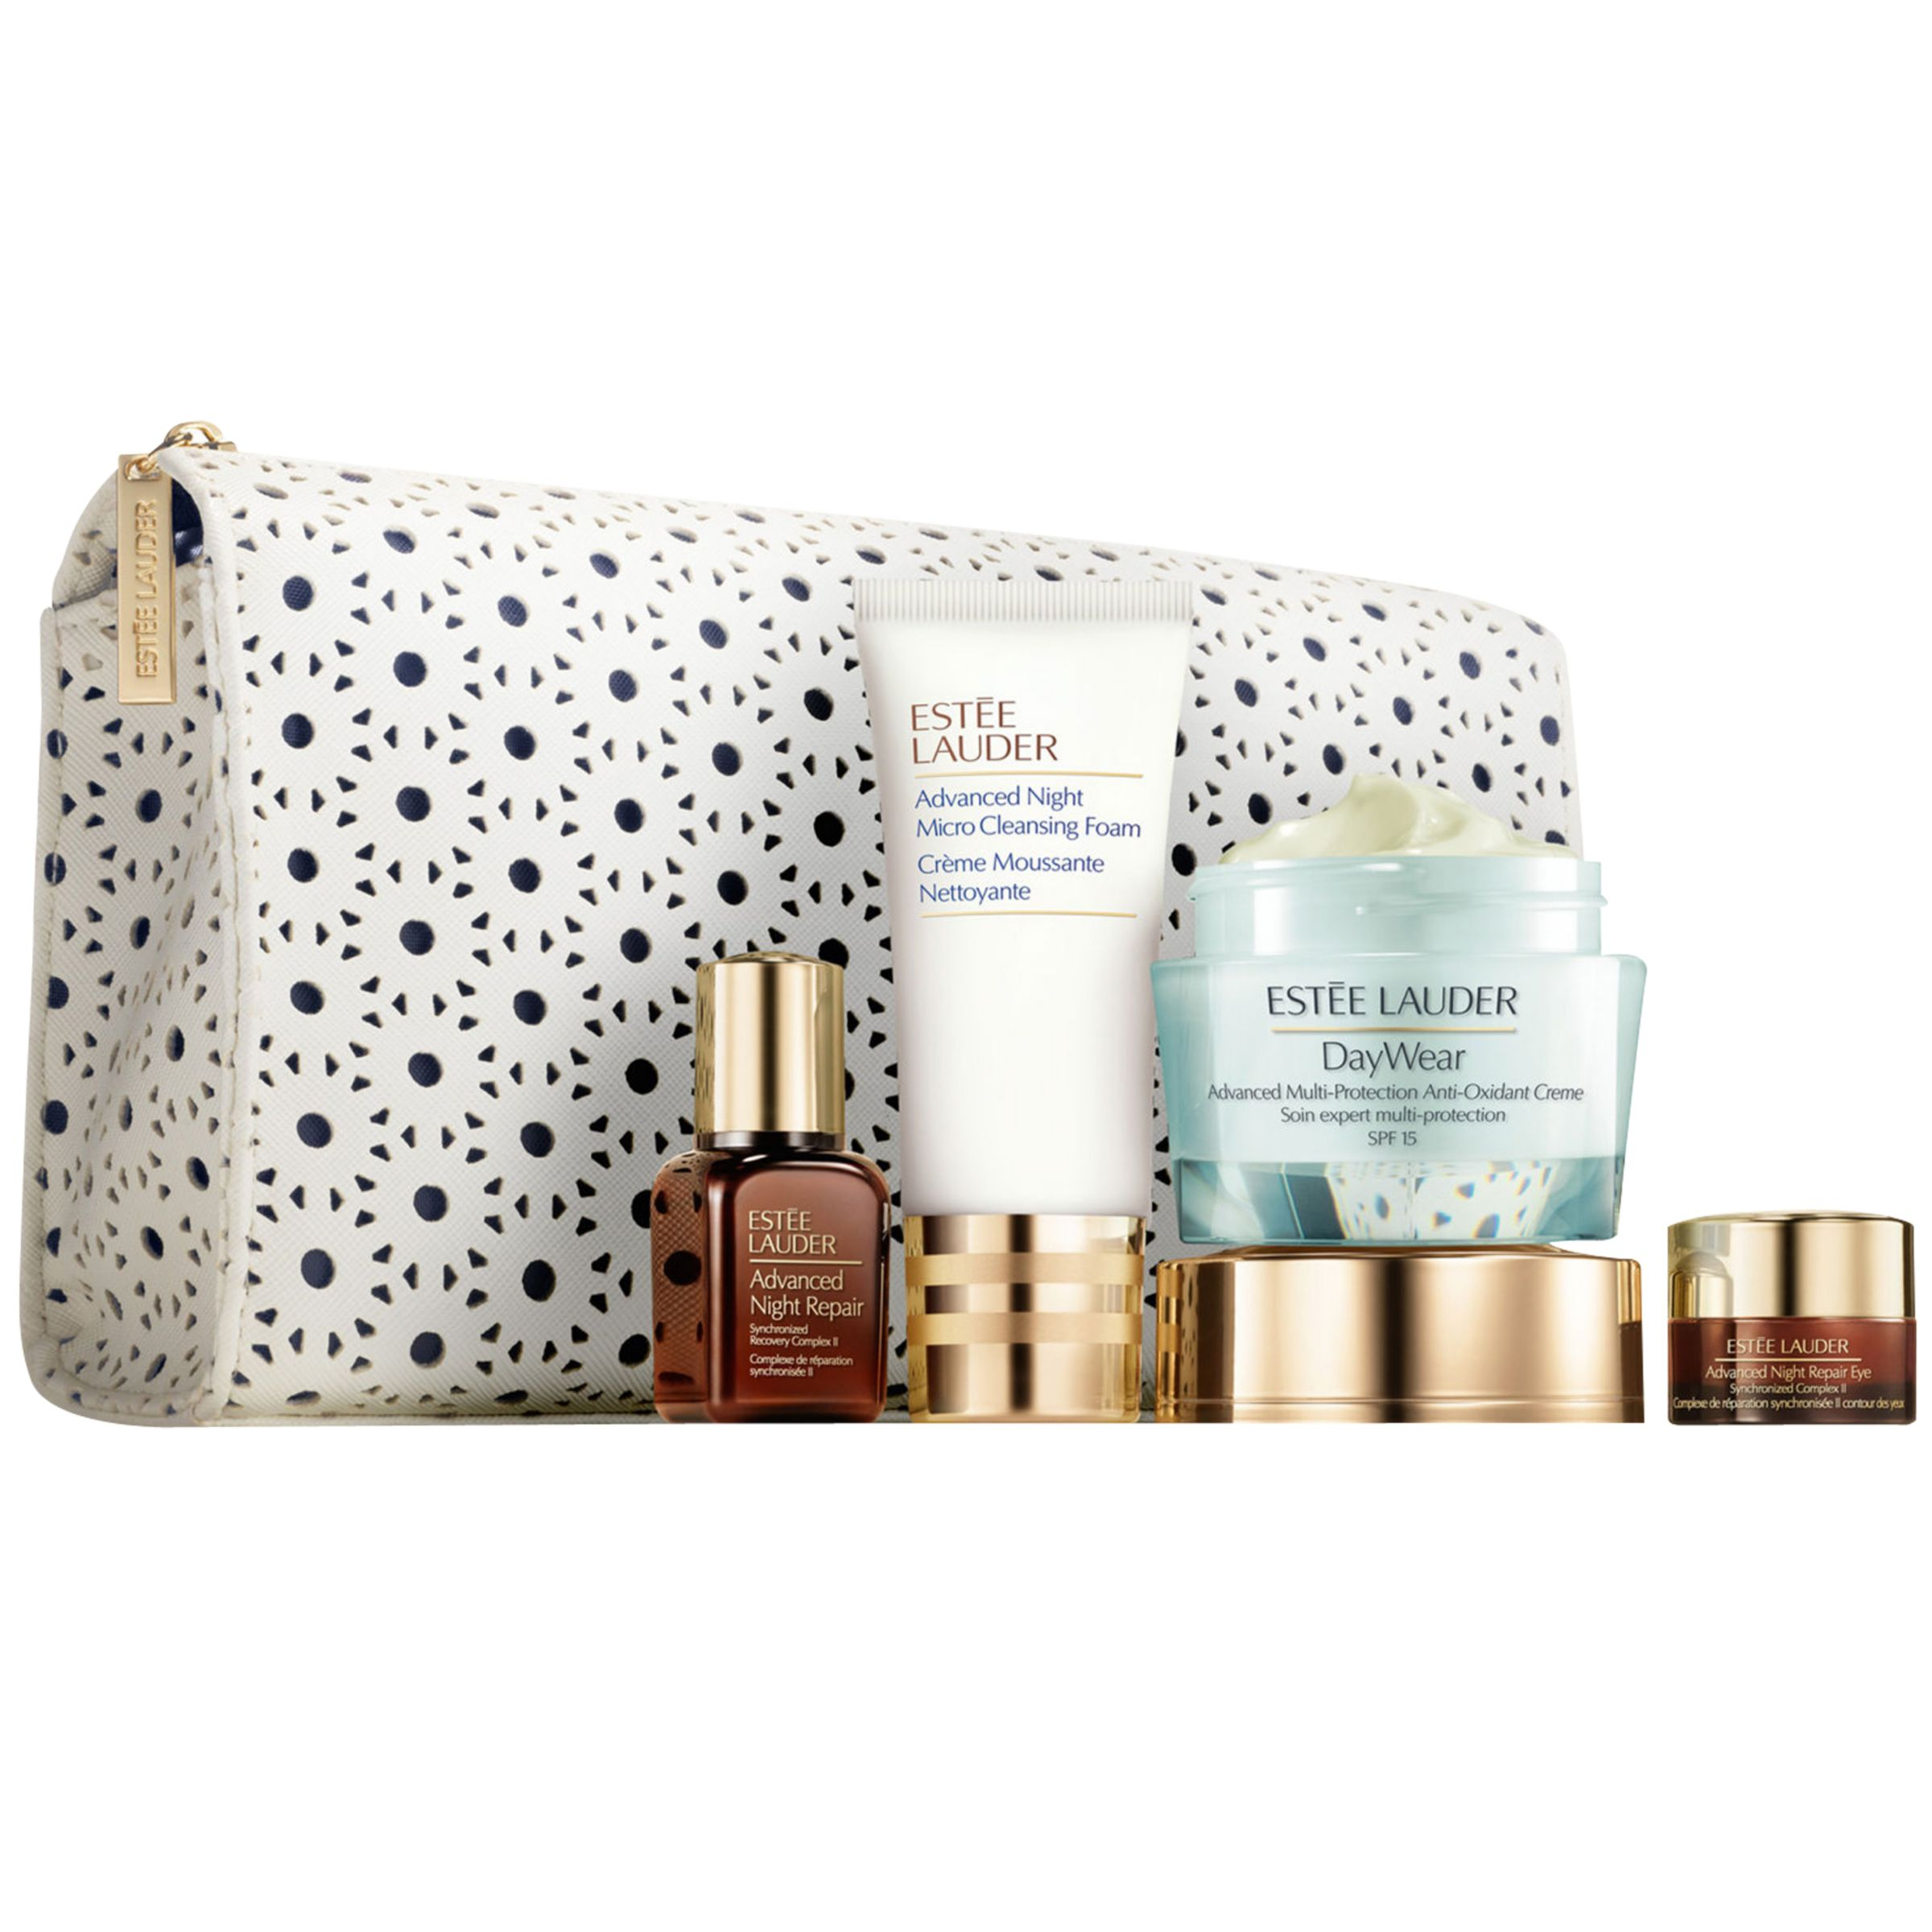 Estee Lauder Age Prevention With Daywear Skincare Gift Set At John Lewis Partners